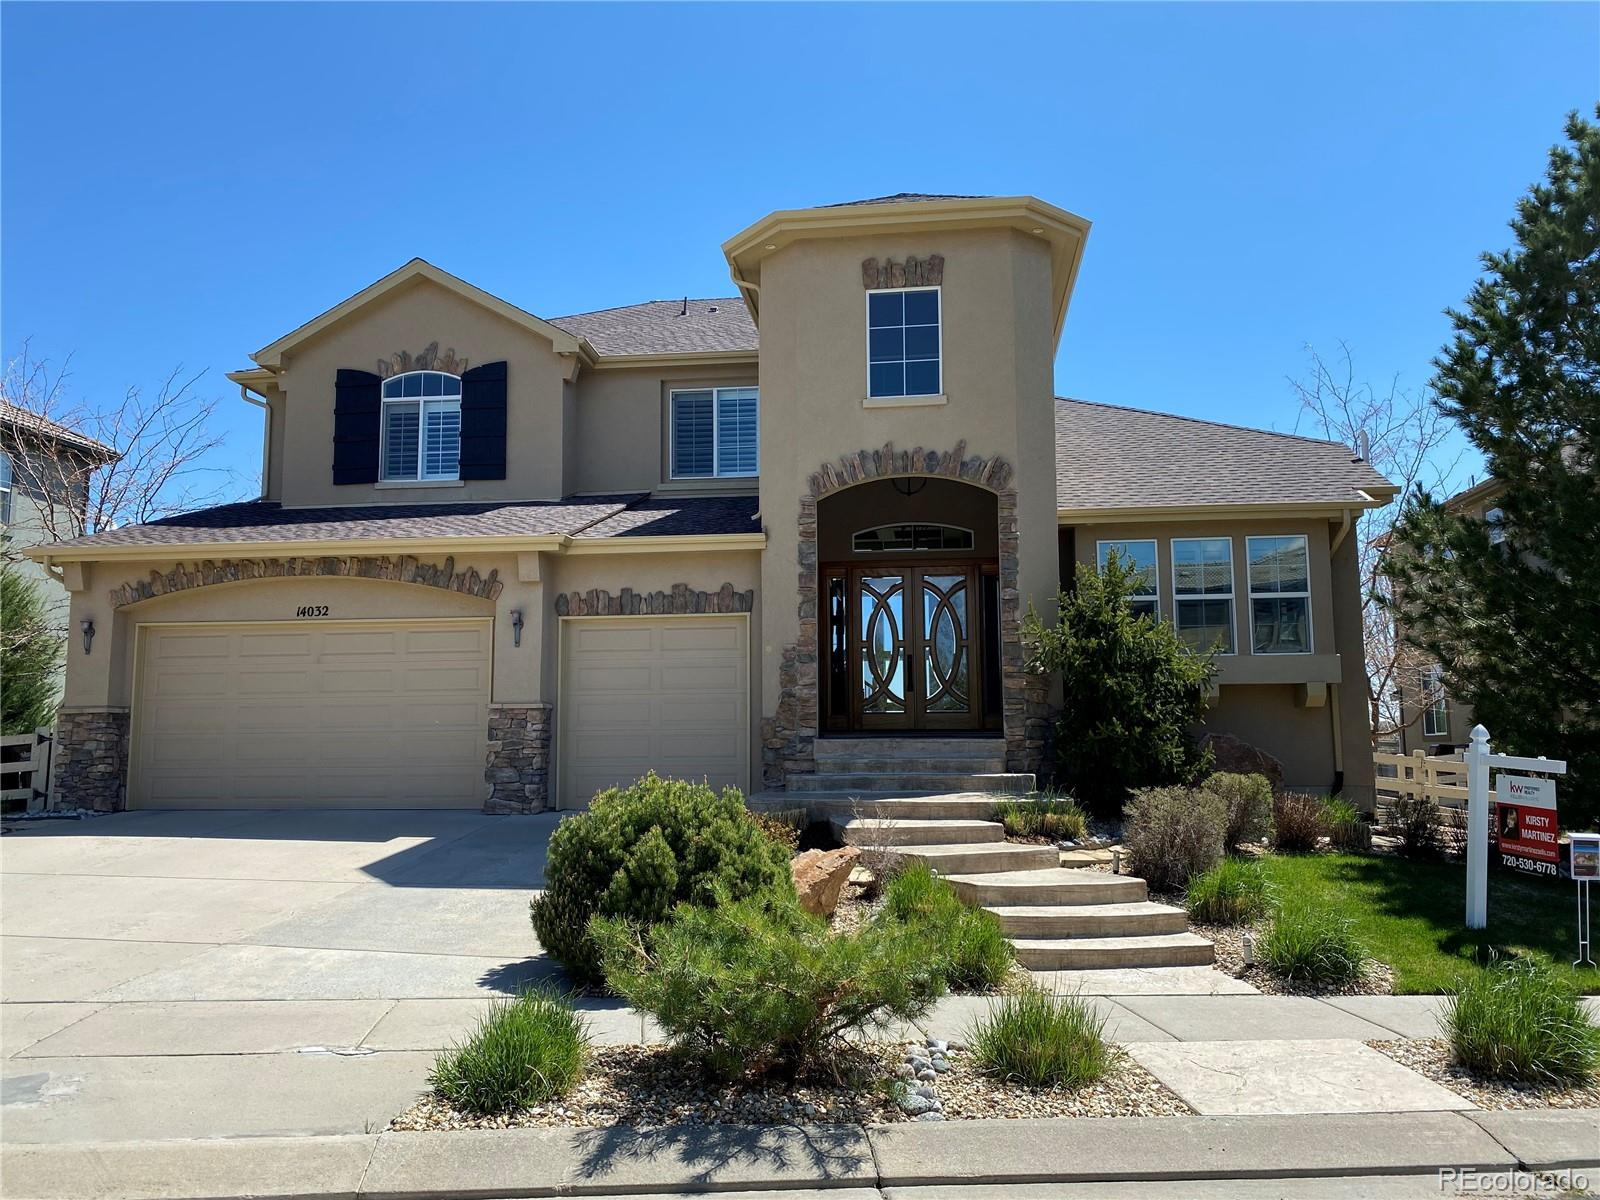 14032 Kahler Place, Broomfield, CO 80023 - Broomfield, CO real estate listing